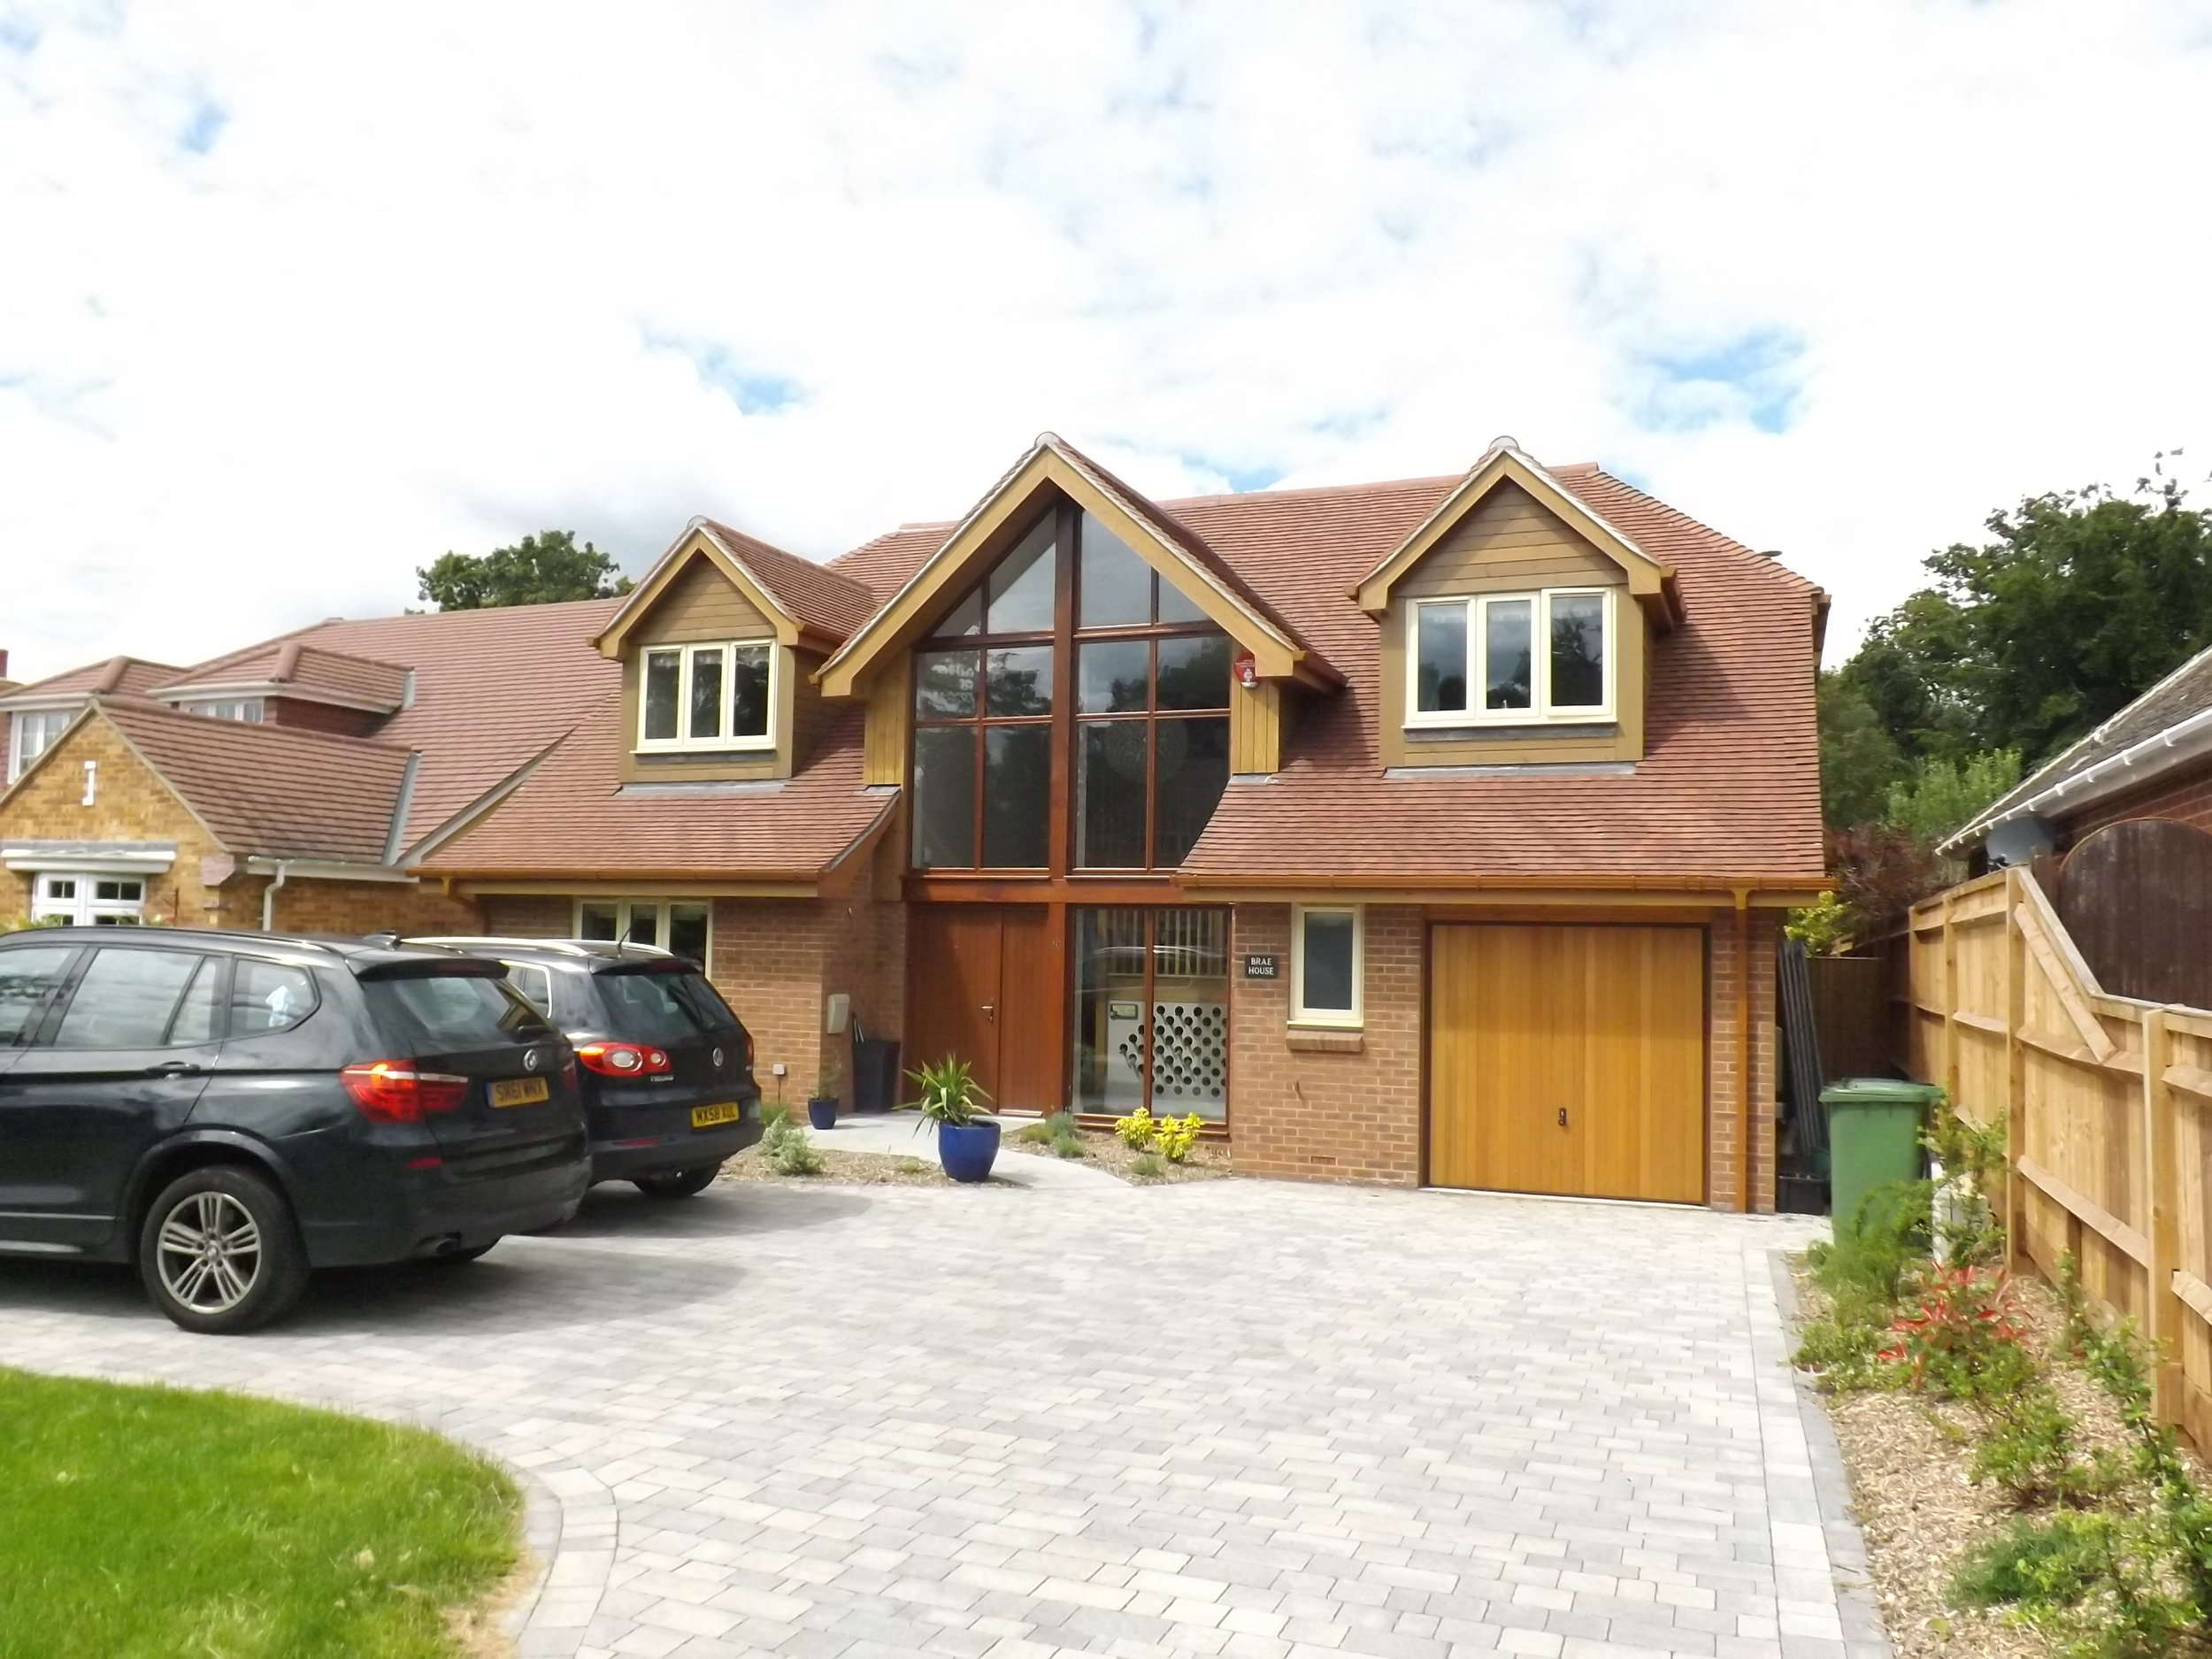 Sherwood Road, Chandlers Ford